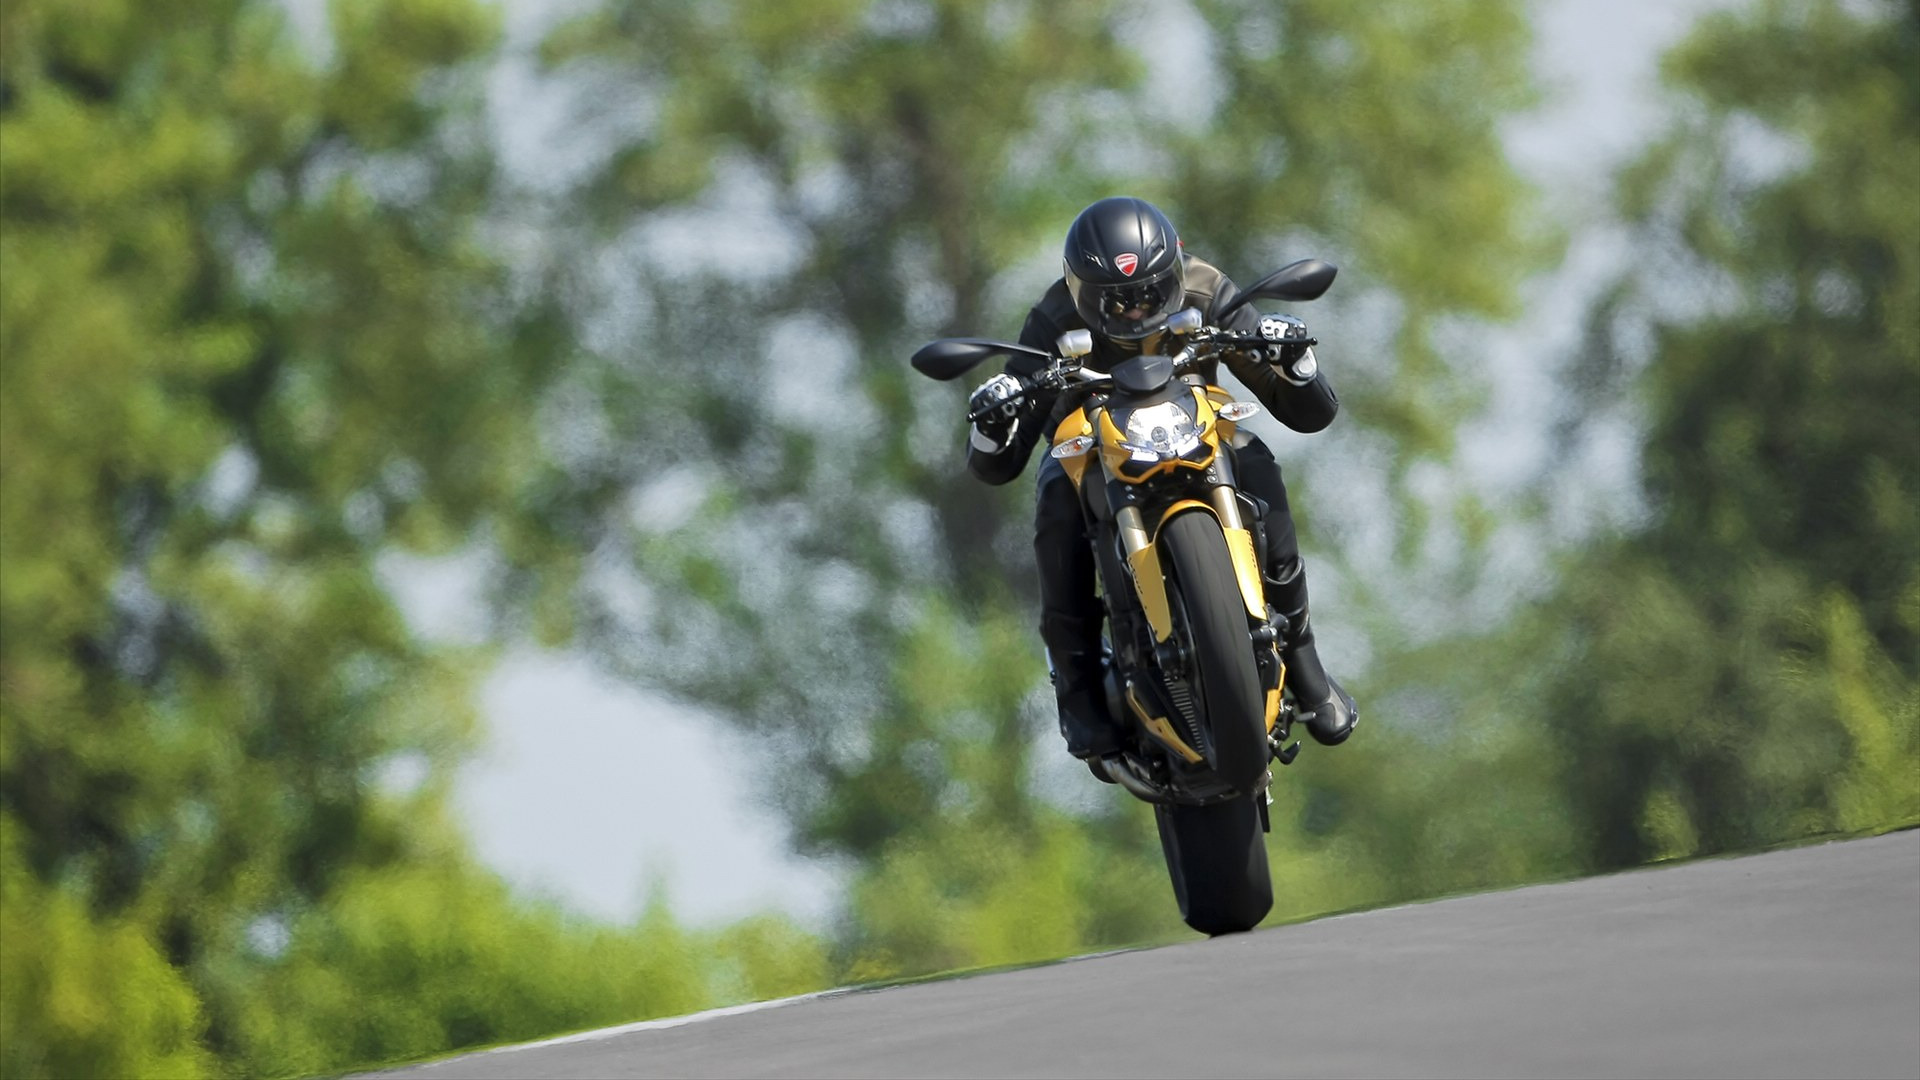 Image Ducati Street Fighter 848 Wallpapers And Stock Photos